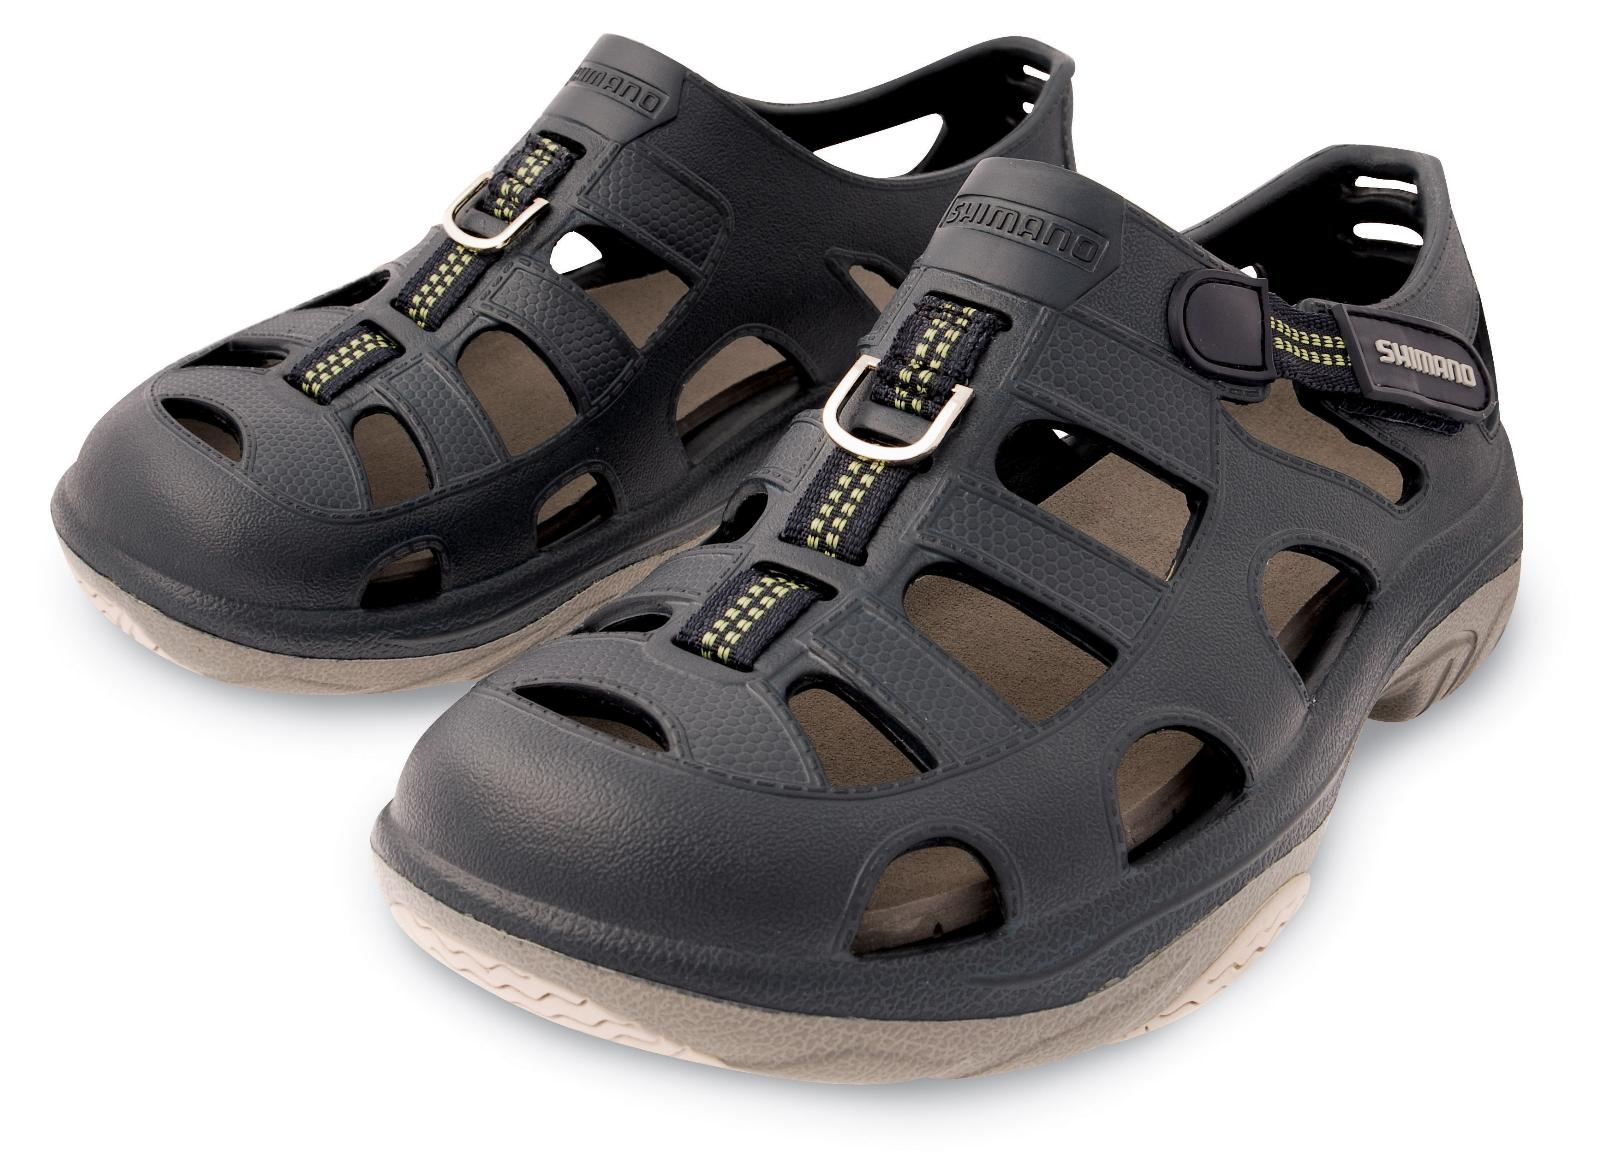 shimano evair marine fishing shoes sandals mens womens